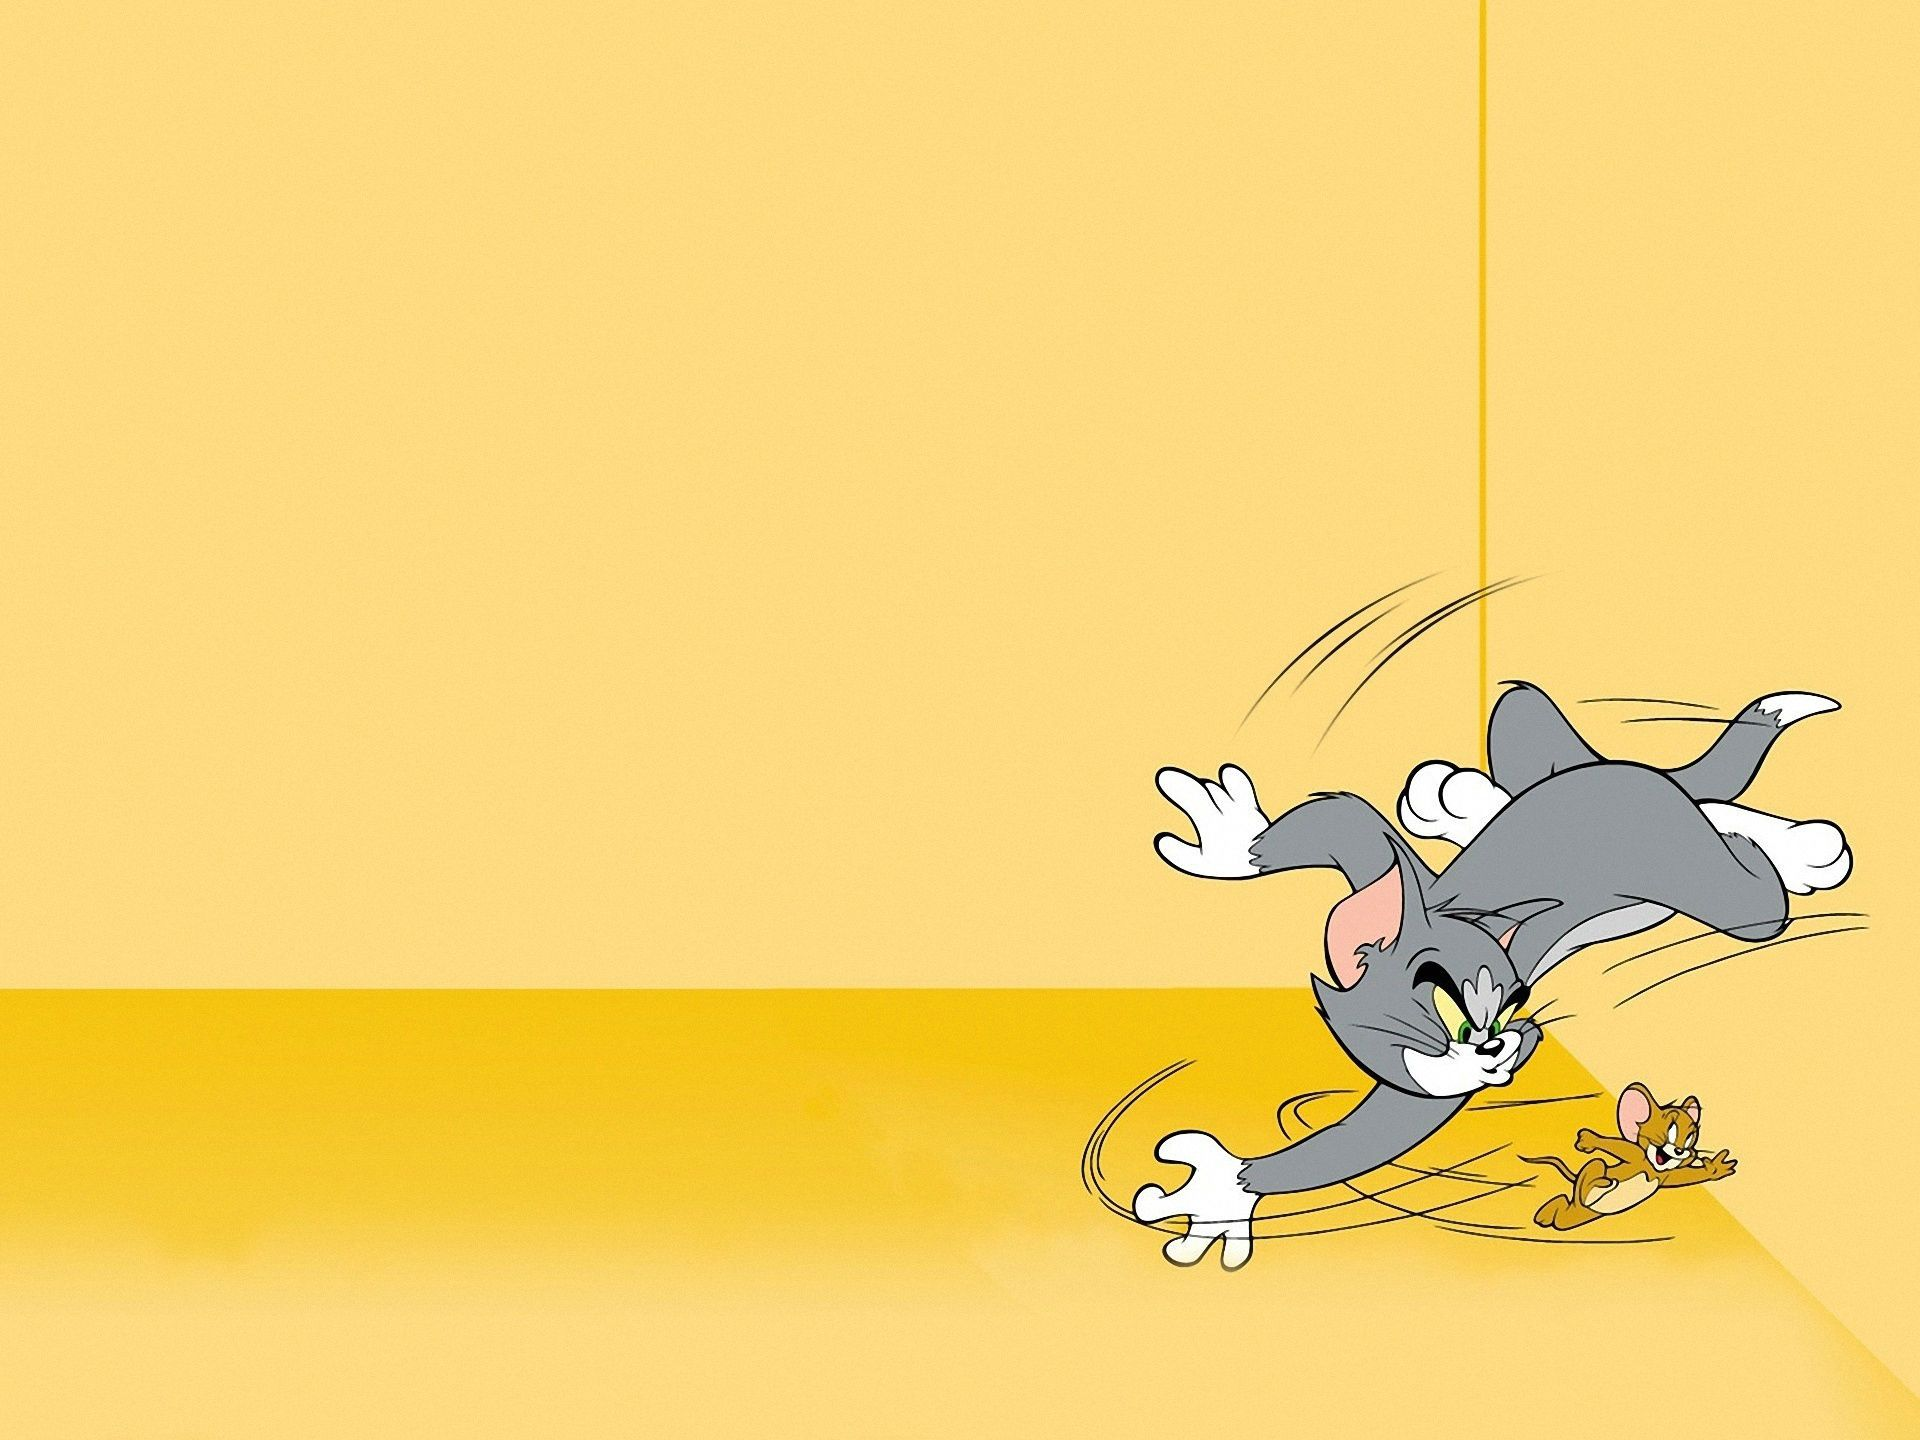 Pin On Thuvienanh Net Full screen 1080p tom and jerry hd